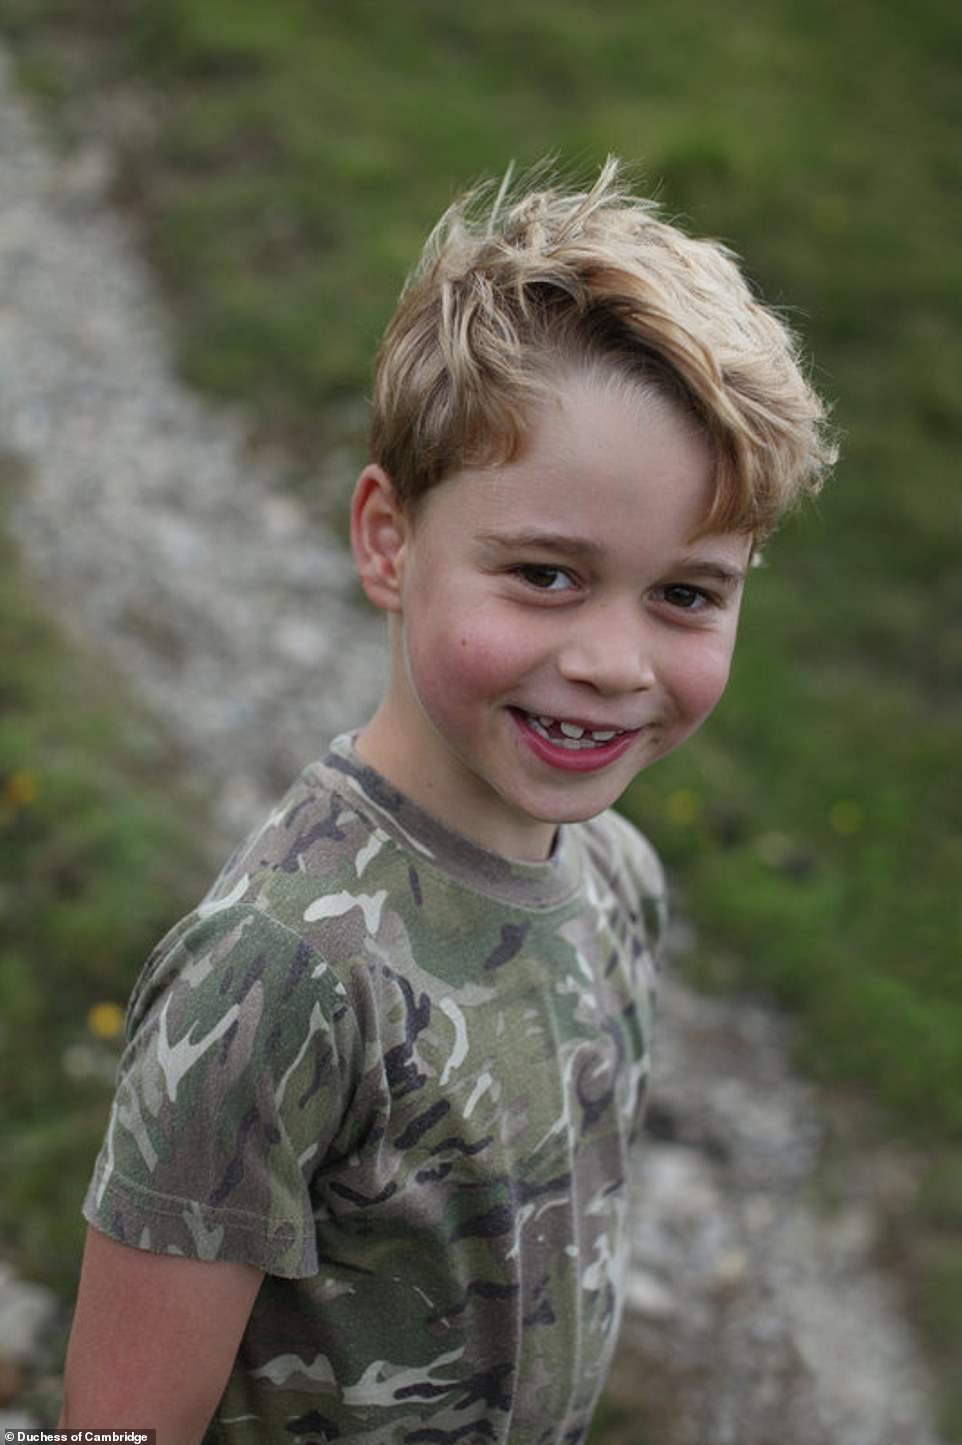 Happy Brithday Prince George! 7 Years Old!